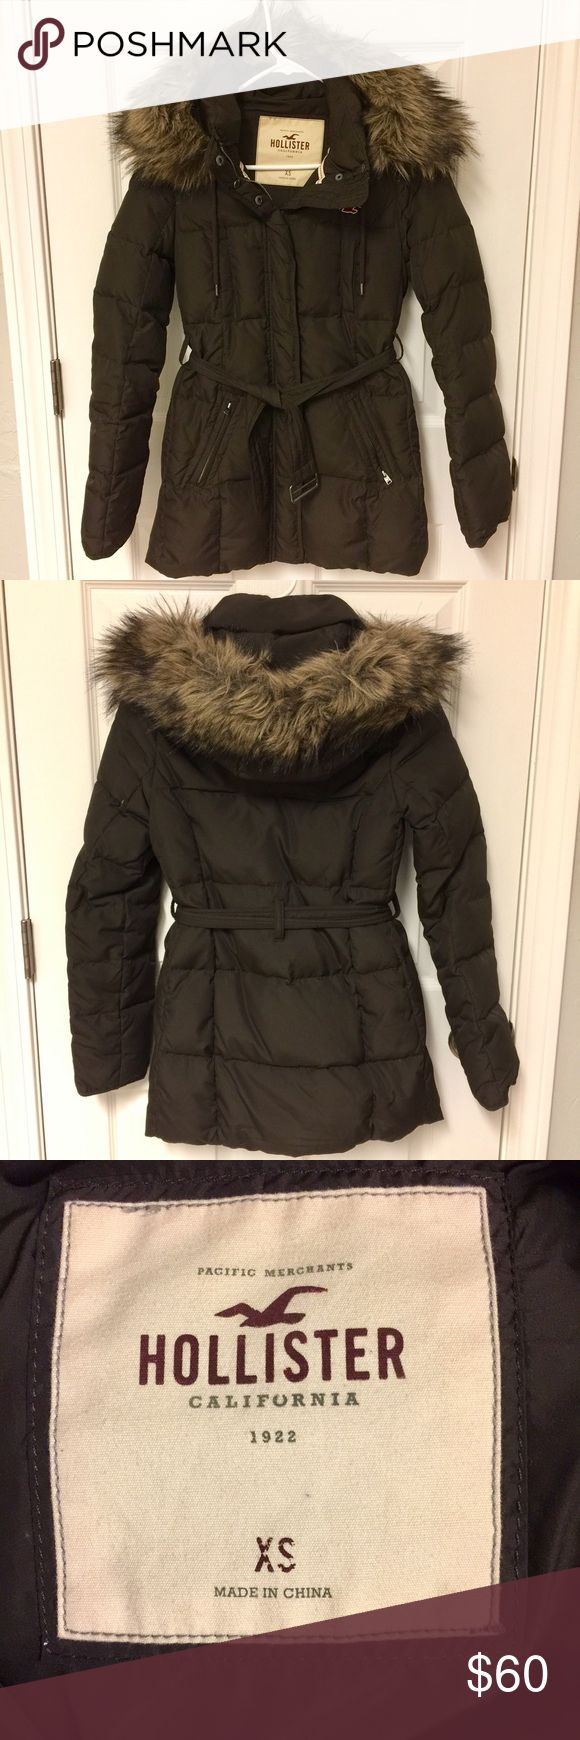 Brown Hollister Down Winter Coat Brown fitted Hollister down winter coat. Mid-length. Very warm and stylish! Removable faux fur around hood. Excellent condition, worn only a few times. Hollister Jackets & Coats